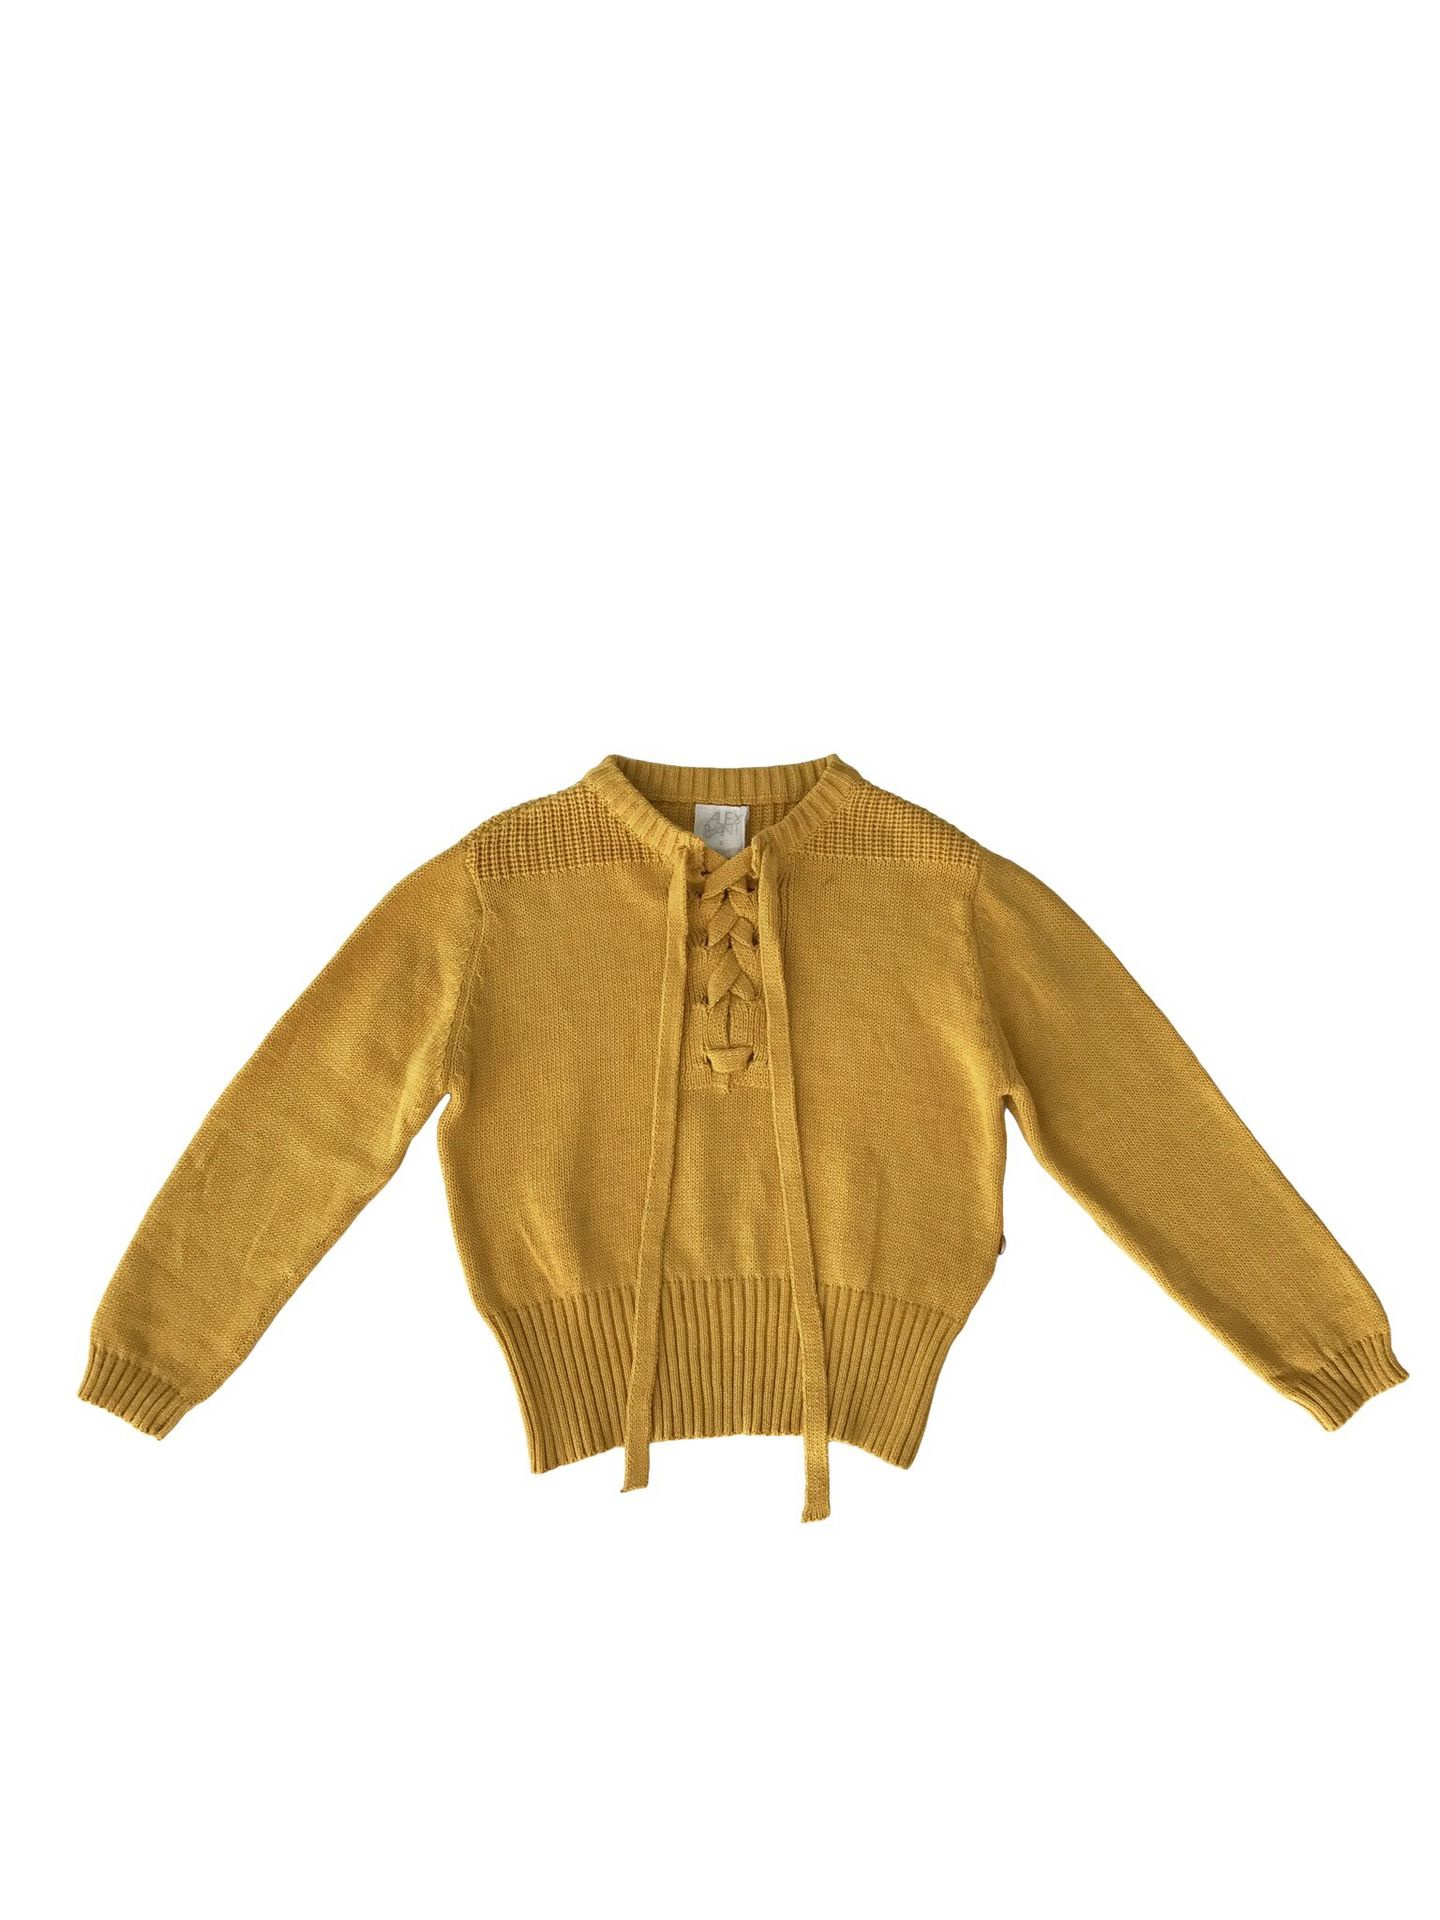 Alex and Ant Tie up Sweater Mustard